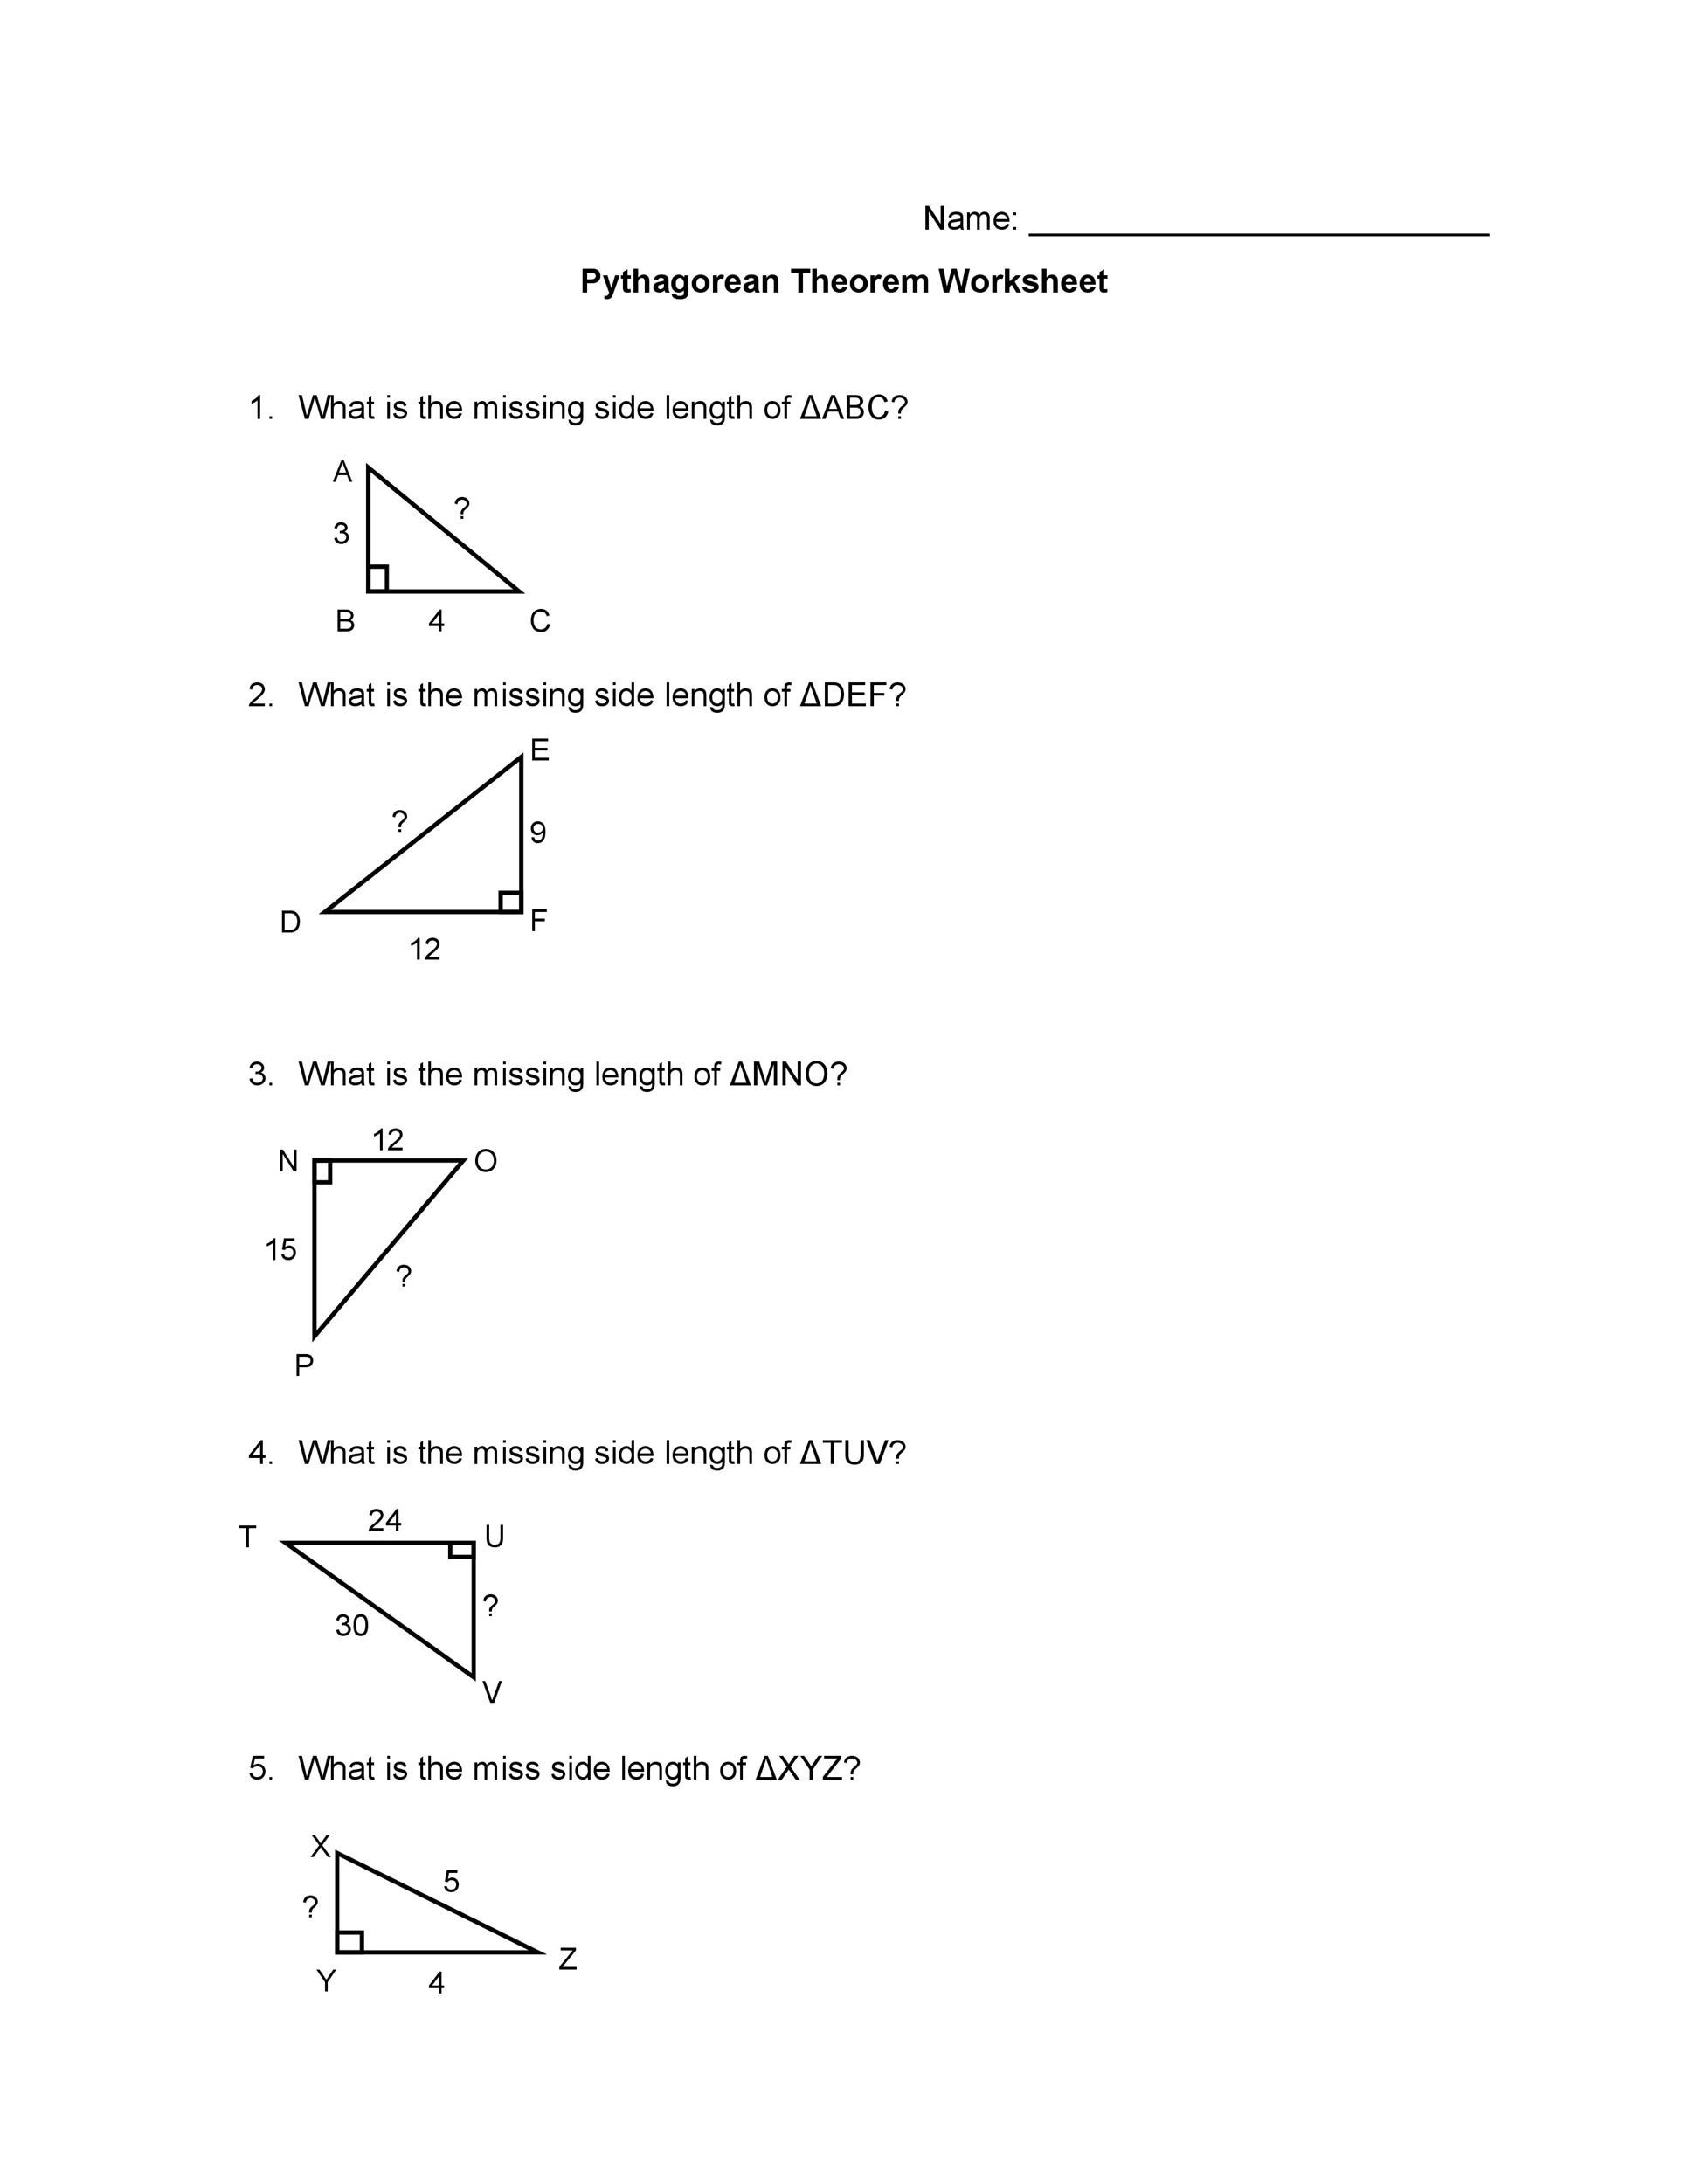 48 Pythagorean Theorem Worksheet with Answers Word PDF – Pythagorean Theorem Worksheet Doc